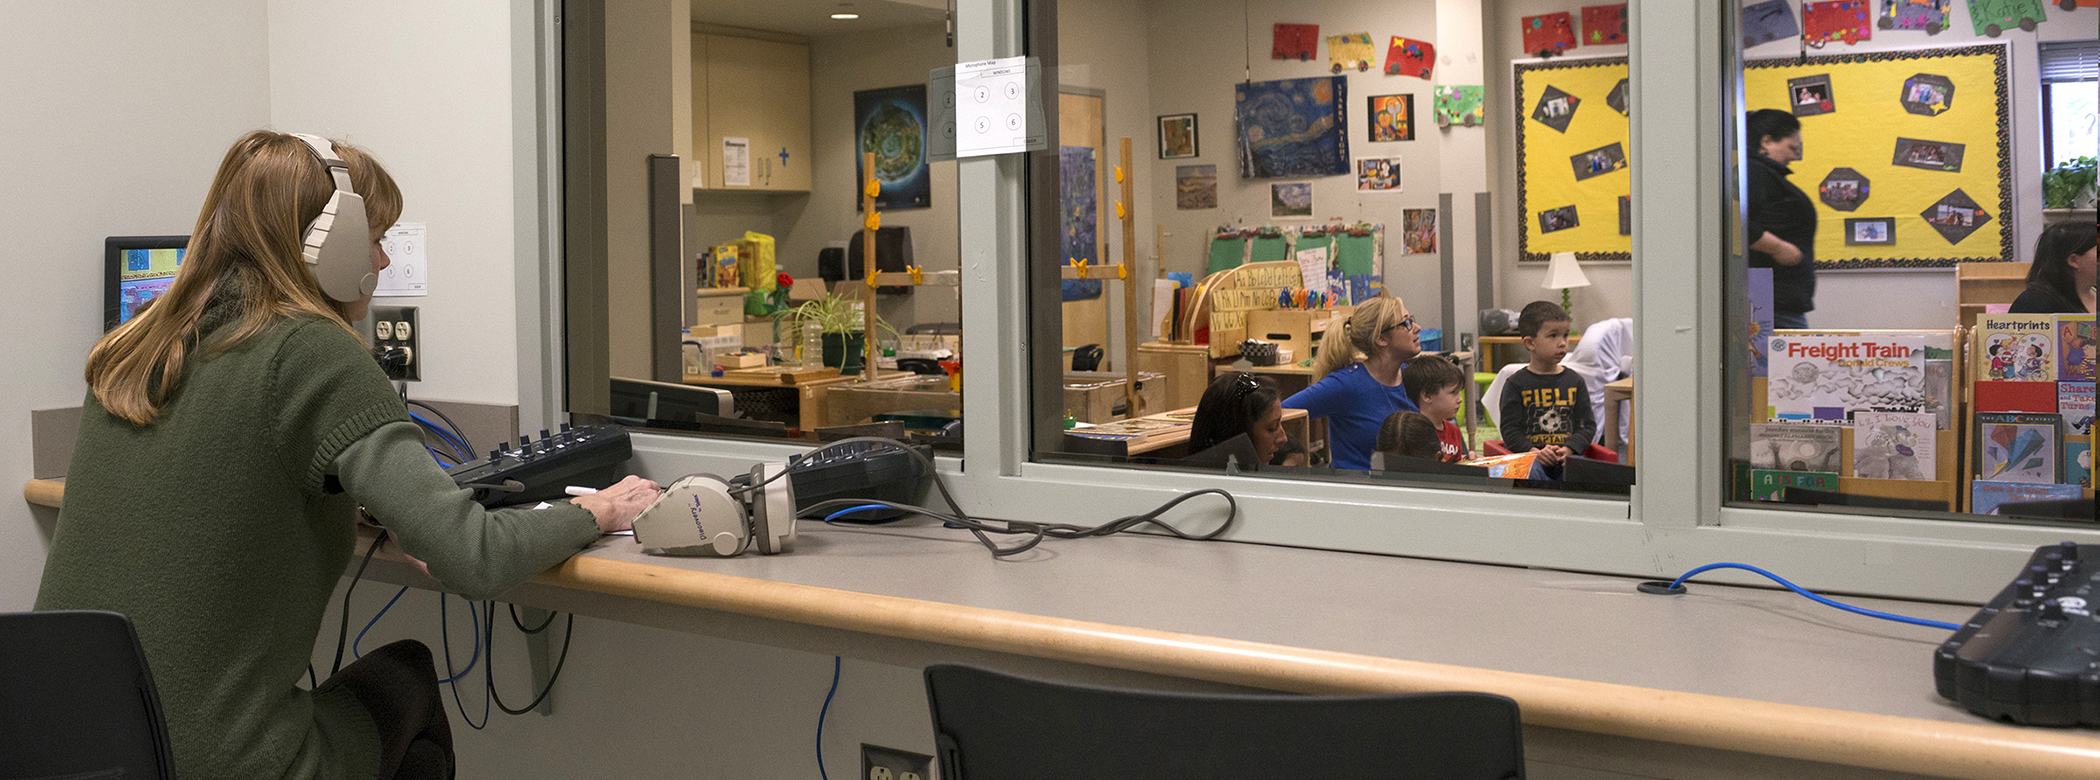 Observation room at the Early Learning Center